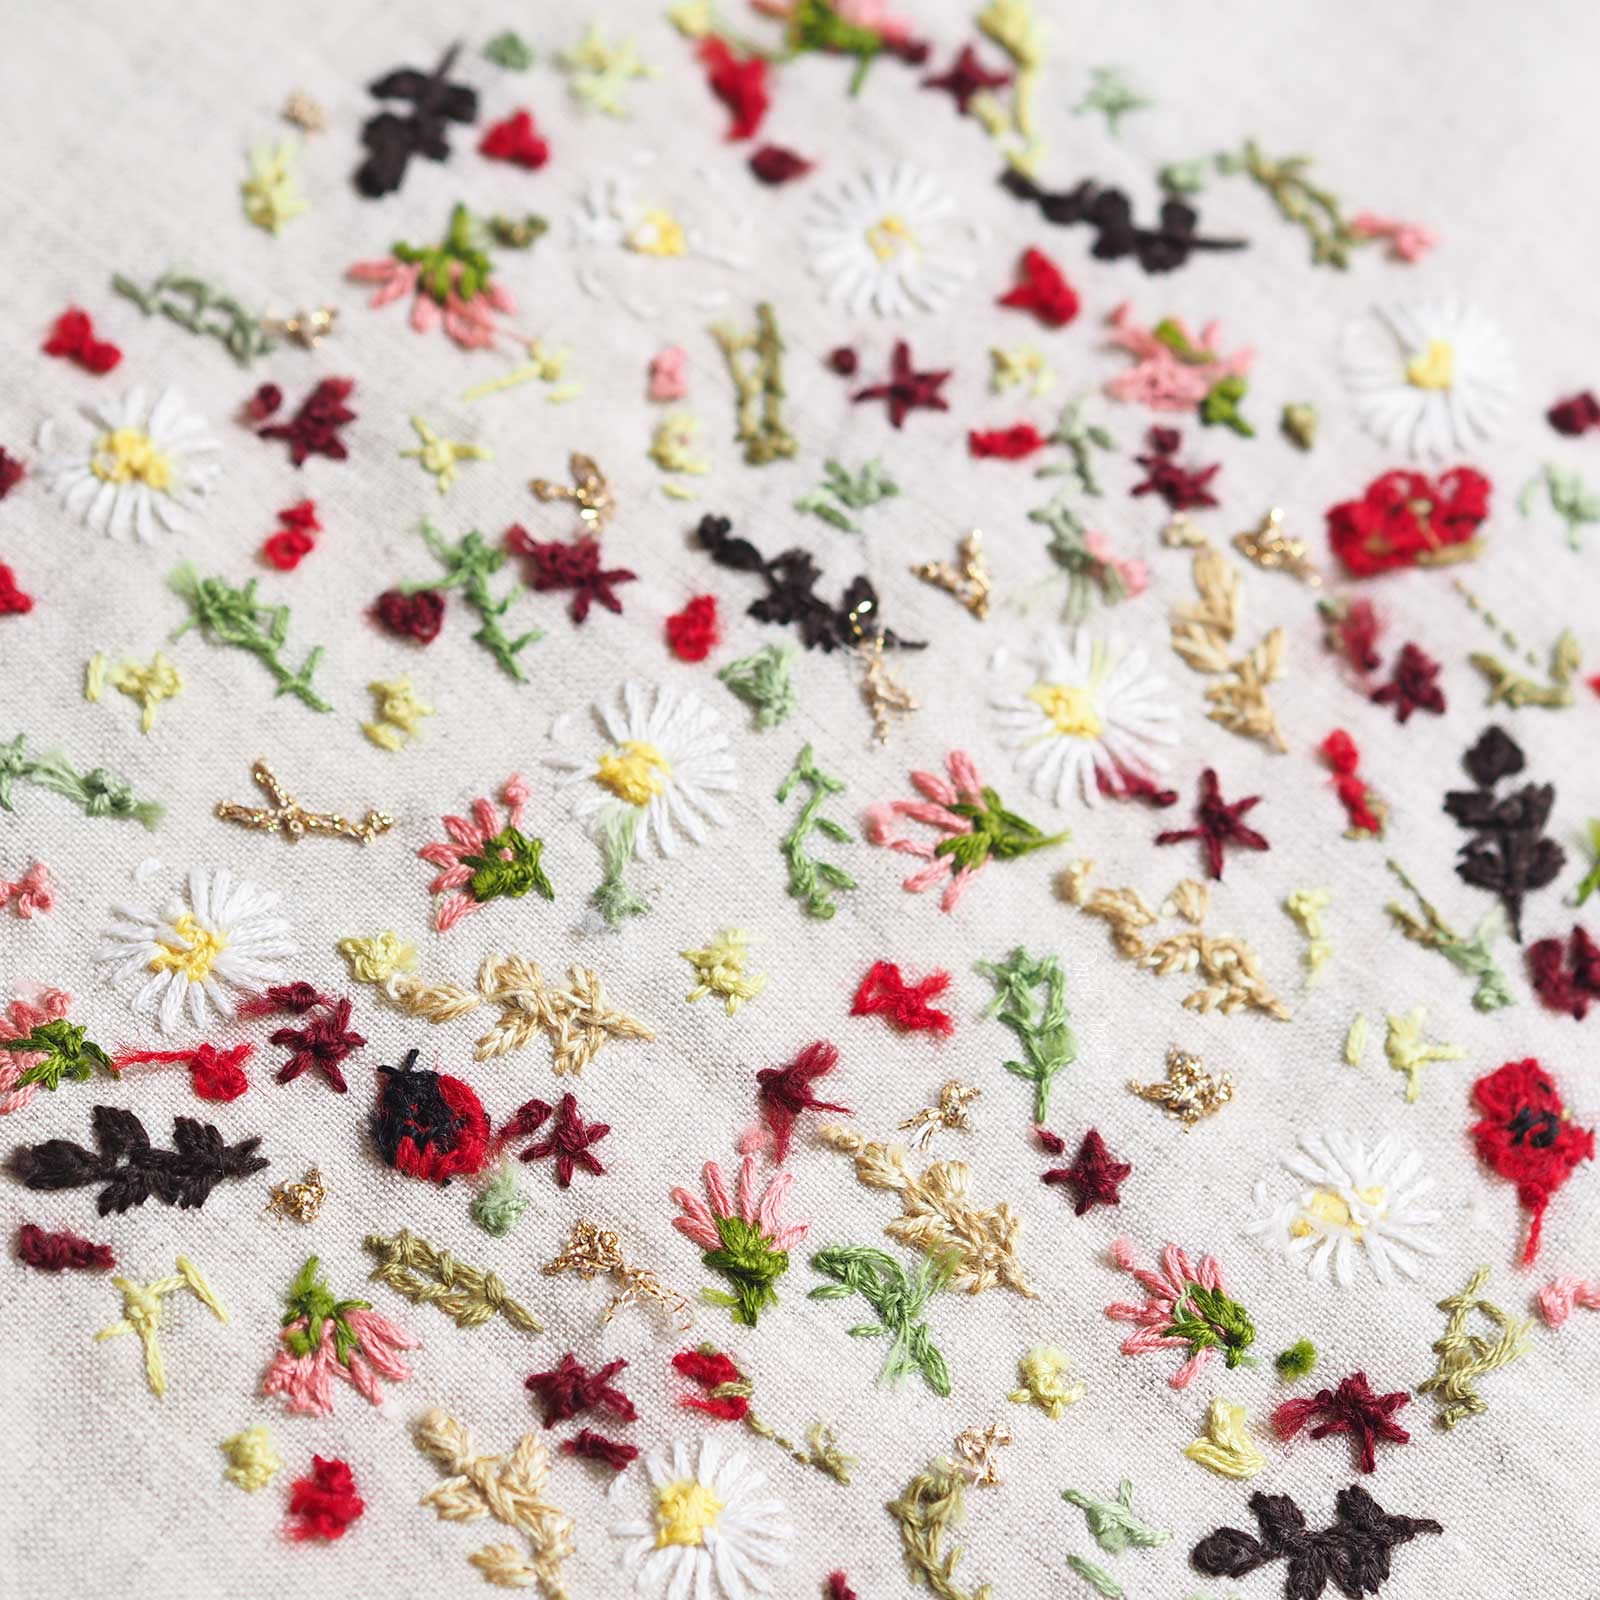 arriere-points-finitions-broderie-fleurs-laboutiquedemelimelo